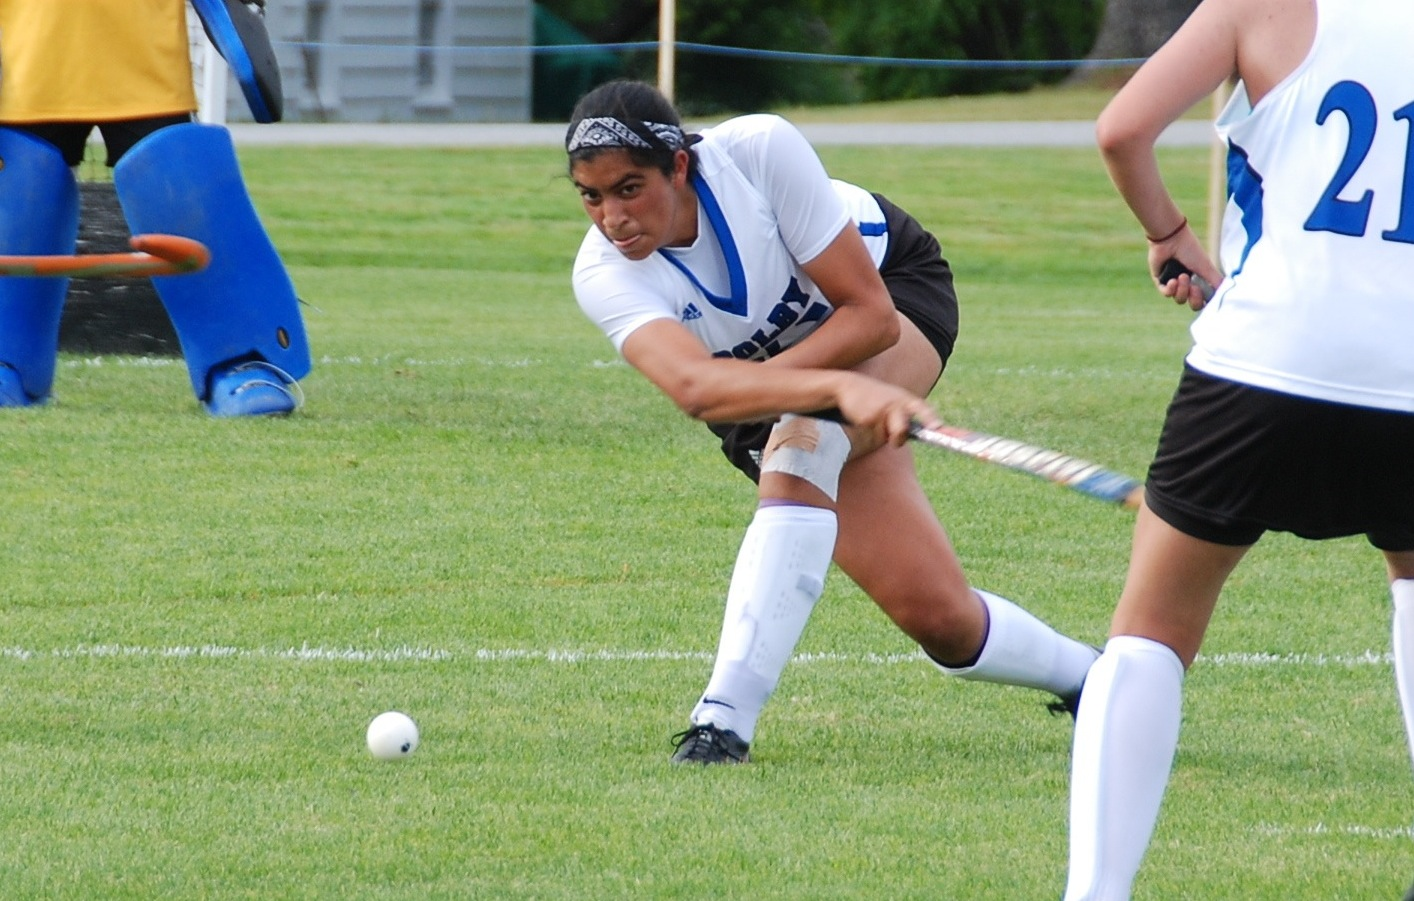 Sirjaut Kaur: Field-Hockey Star Stands Tall